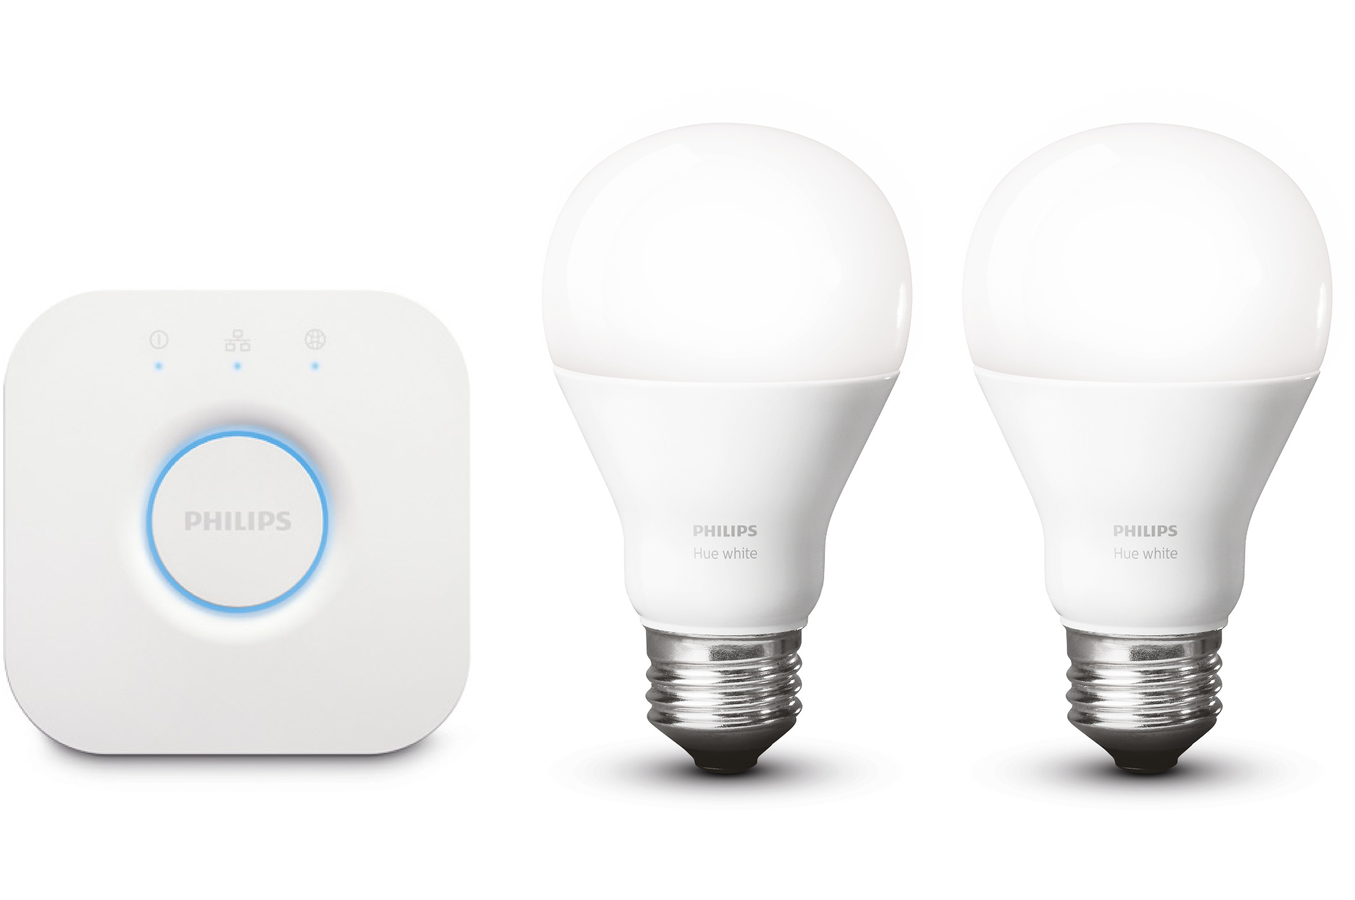 Ampoules connect es philips starter kit hue blanche - Ampoule philips hue ...